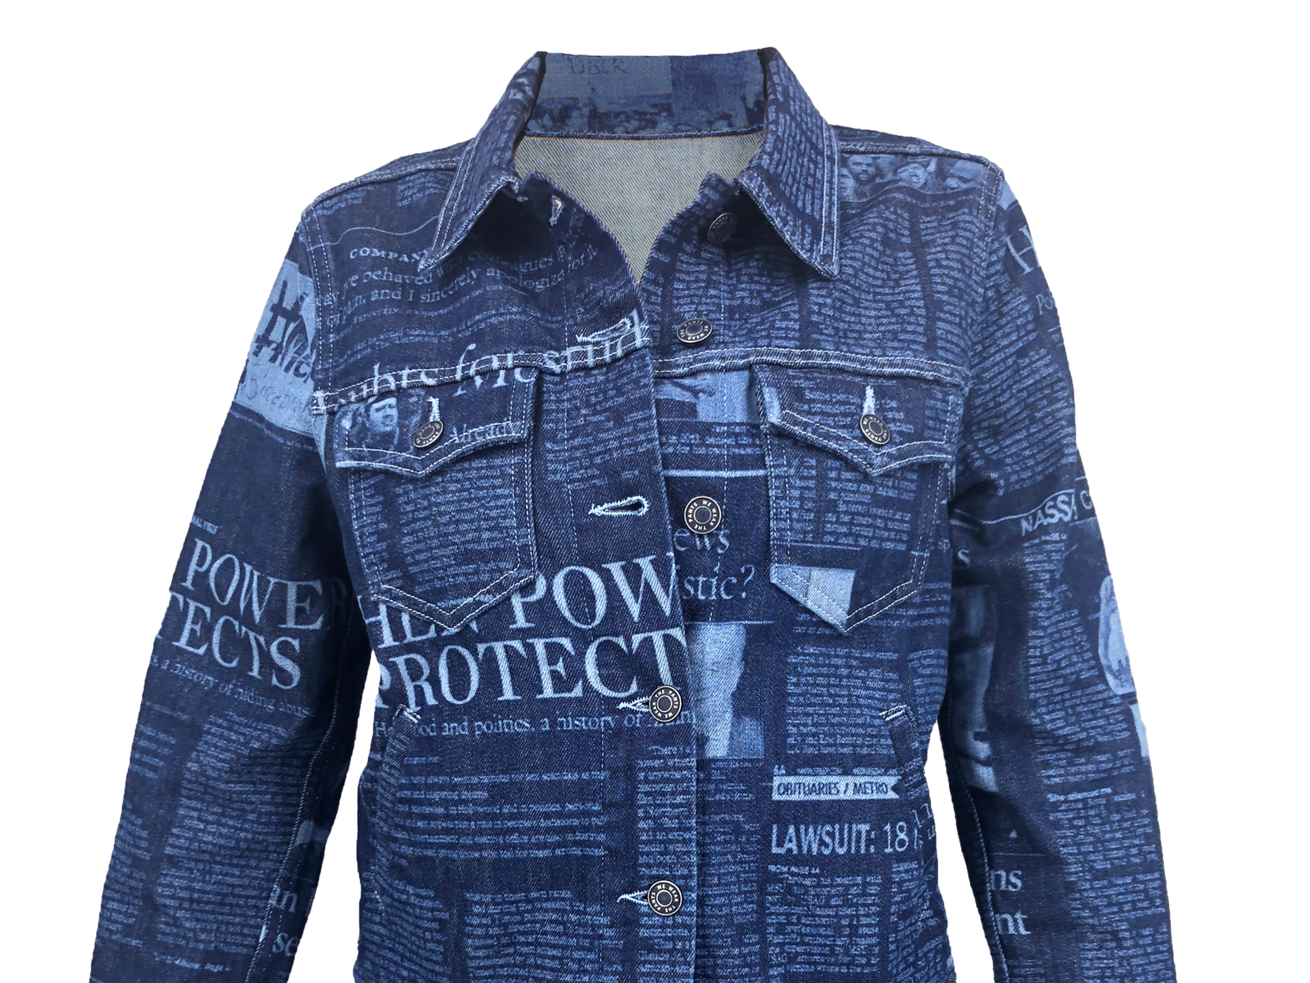 We Wear the Pants, a denim capsule collection, seeks to raise awareness about #MeToo.